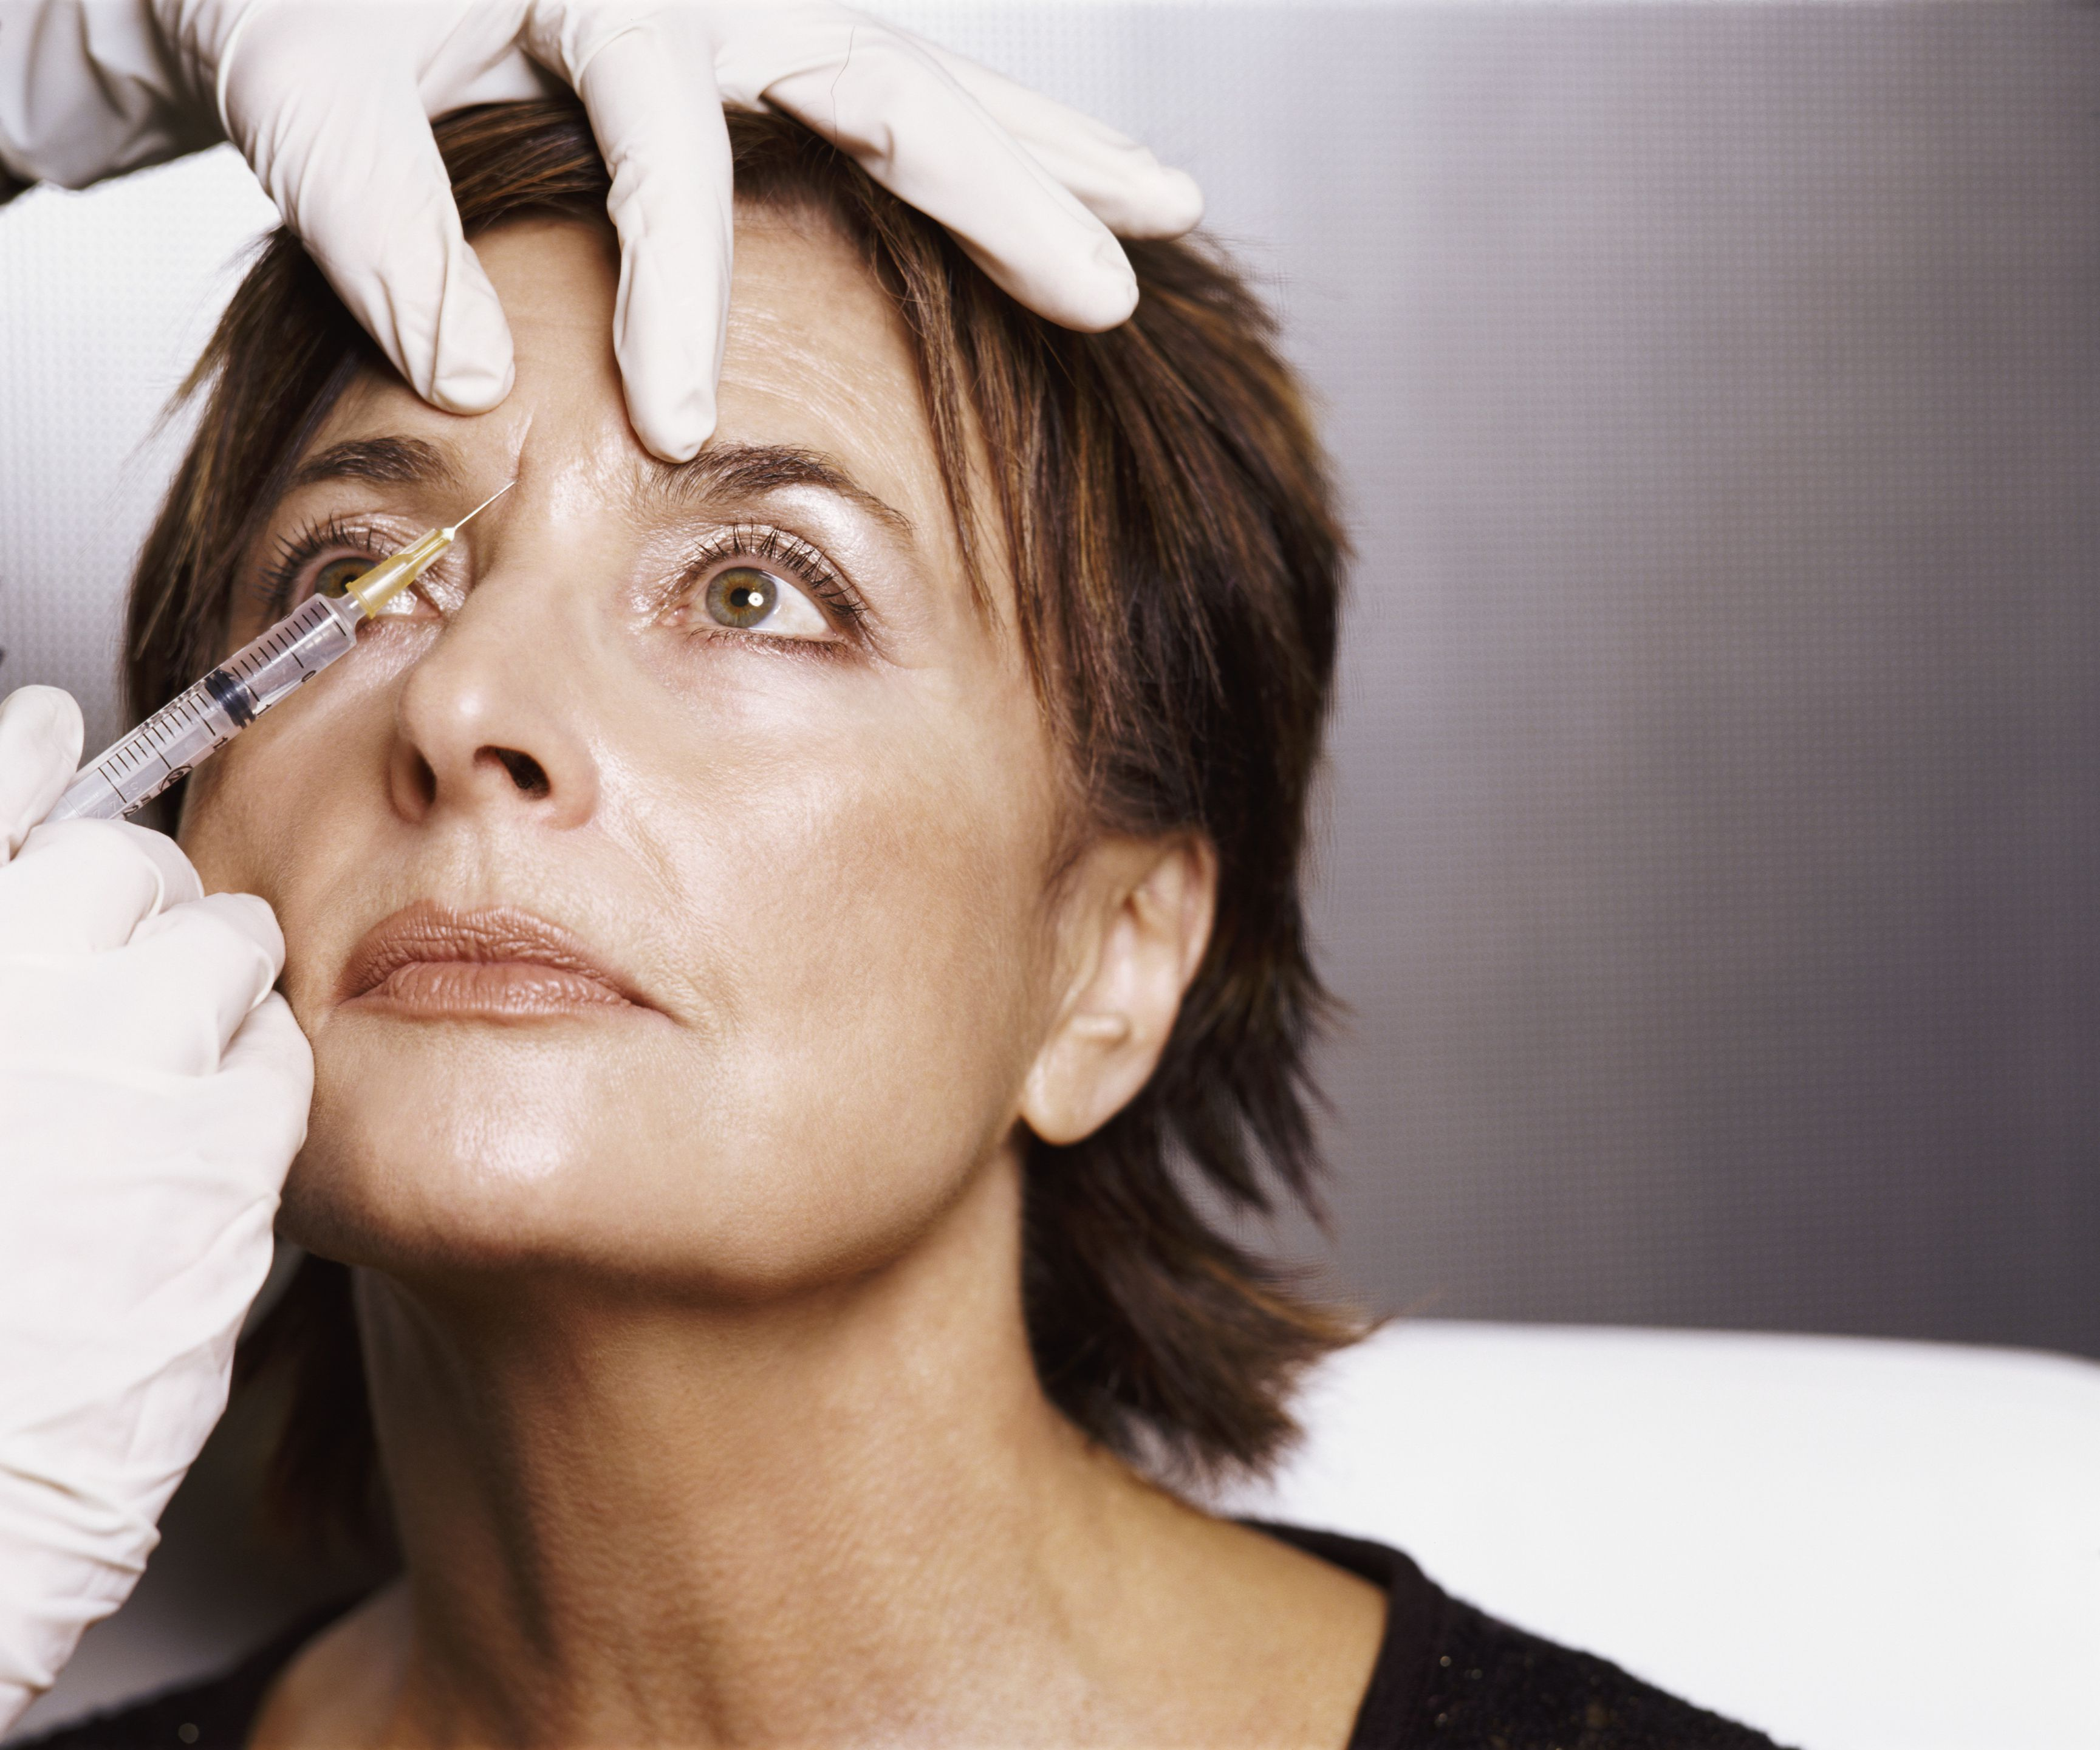 5 deep wrinkle treatments that actually work 5 amazing uses for botox solutioingenieria Image collections